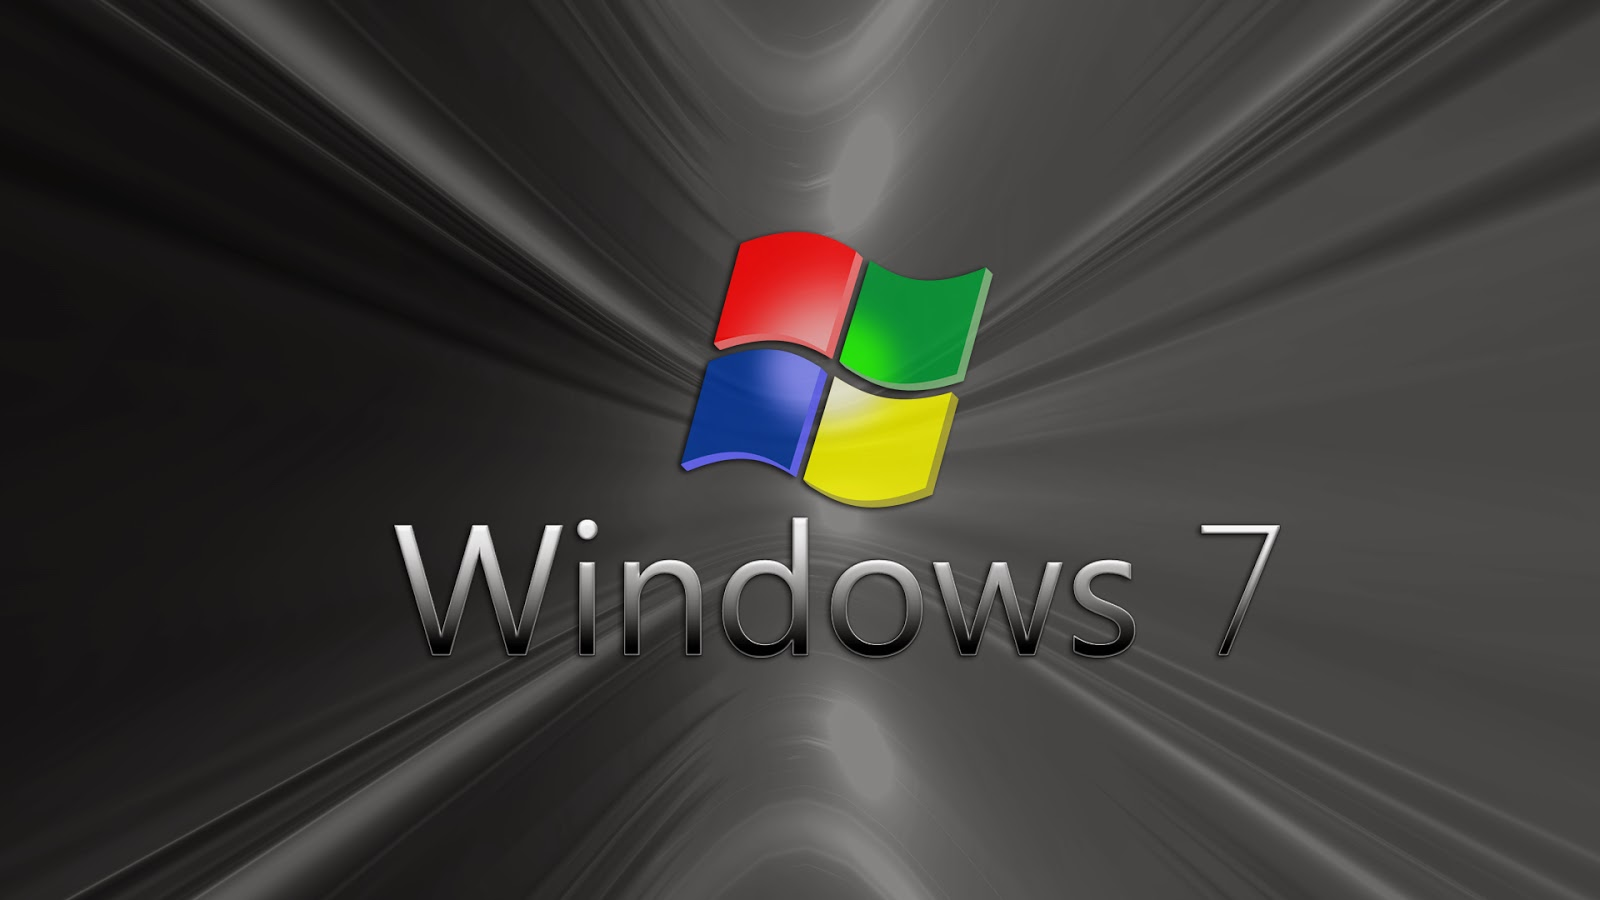 Imagenes zt descarga fondos hd fondo de pantalla windows 7 - Fondos de escritorio hd para windows ...